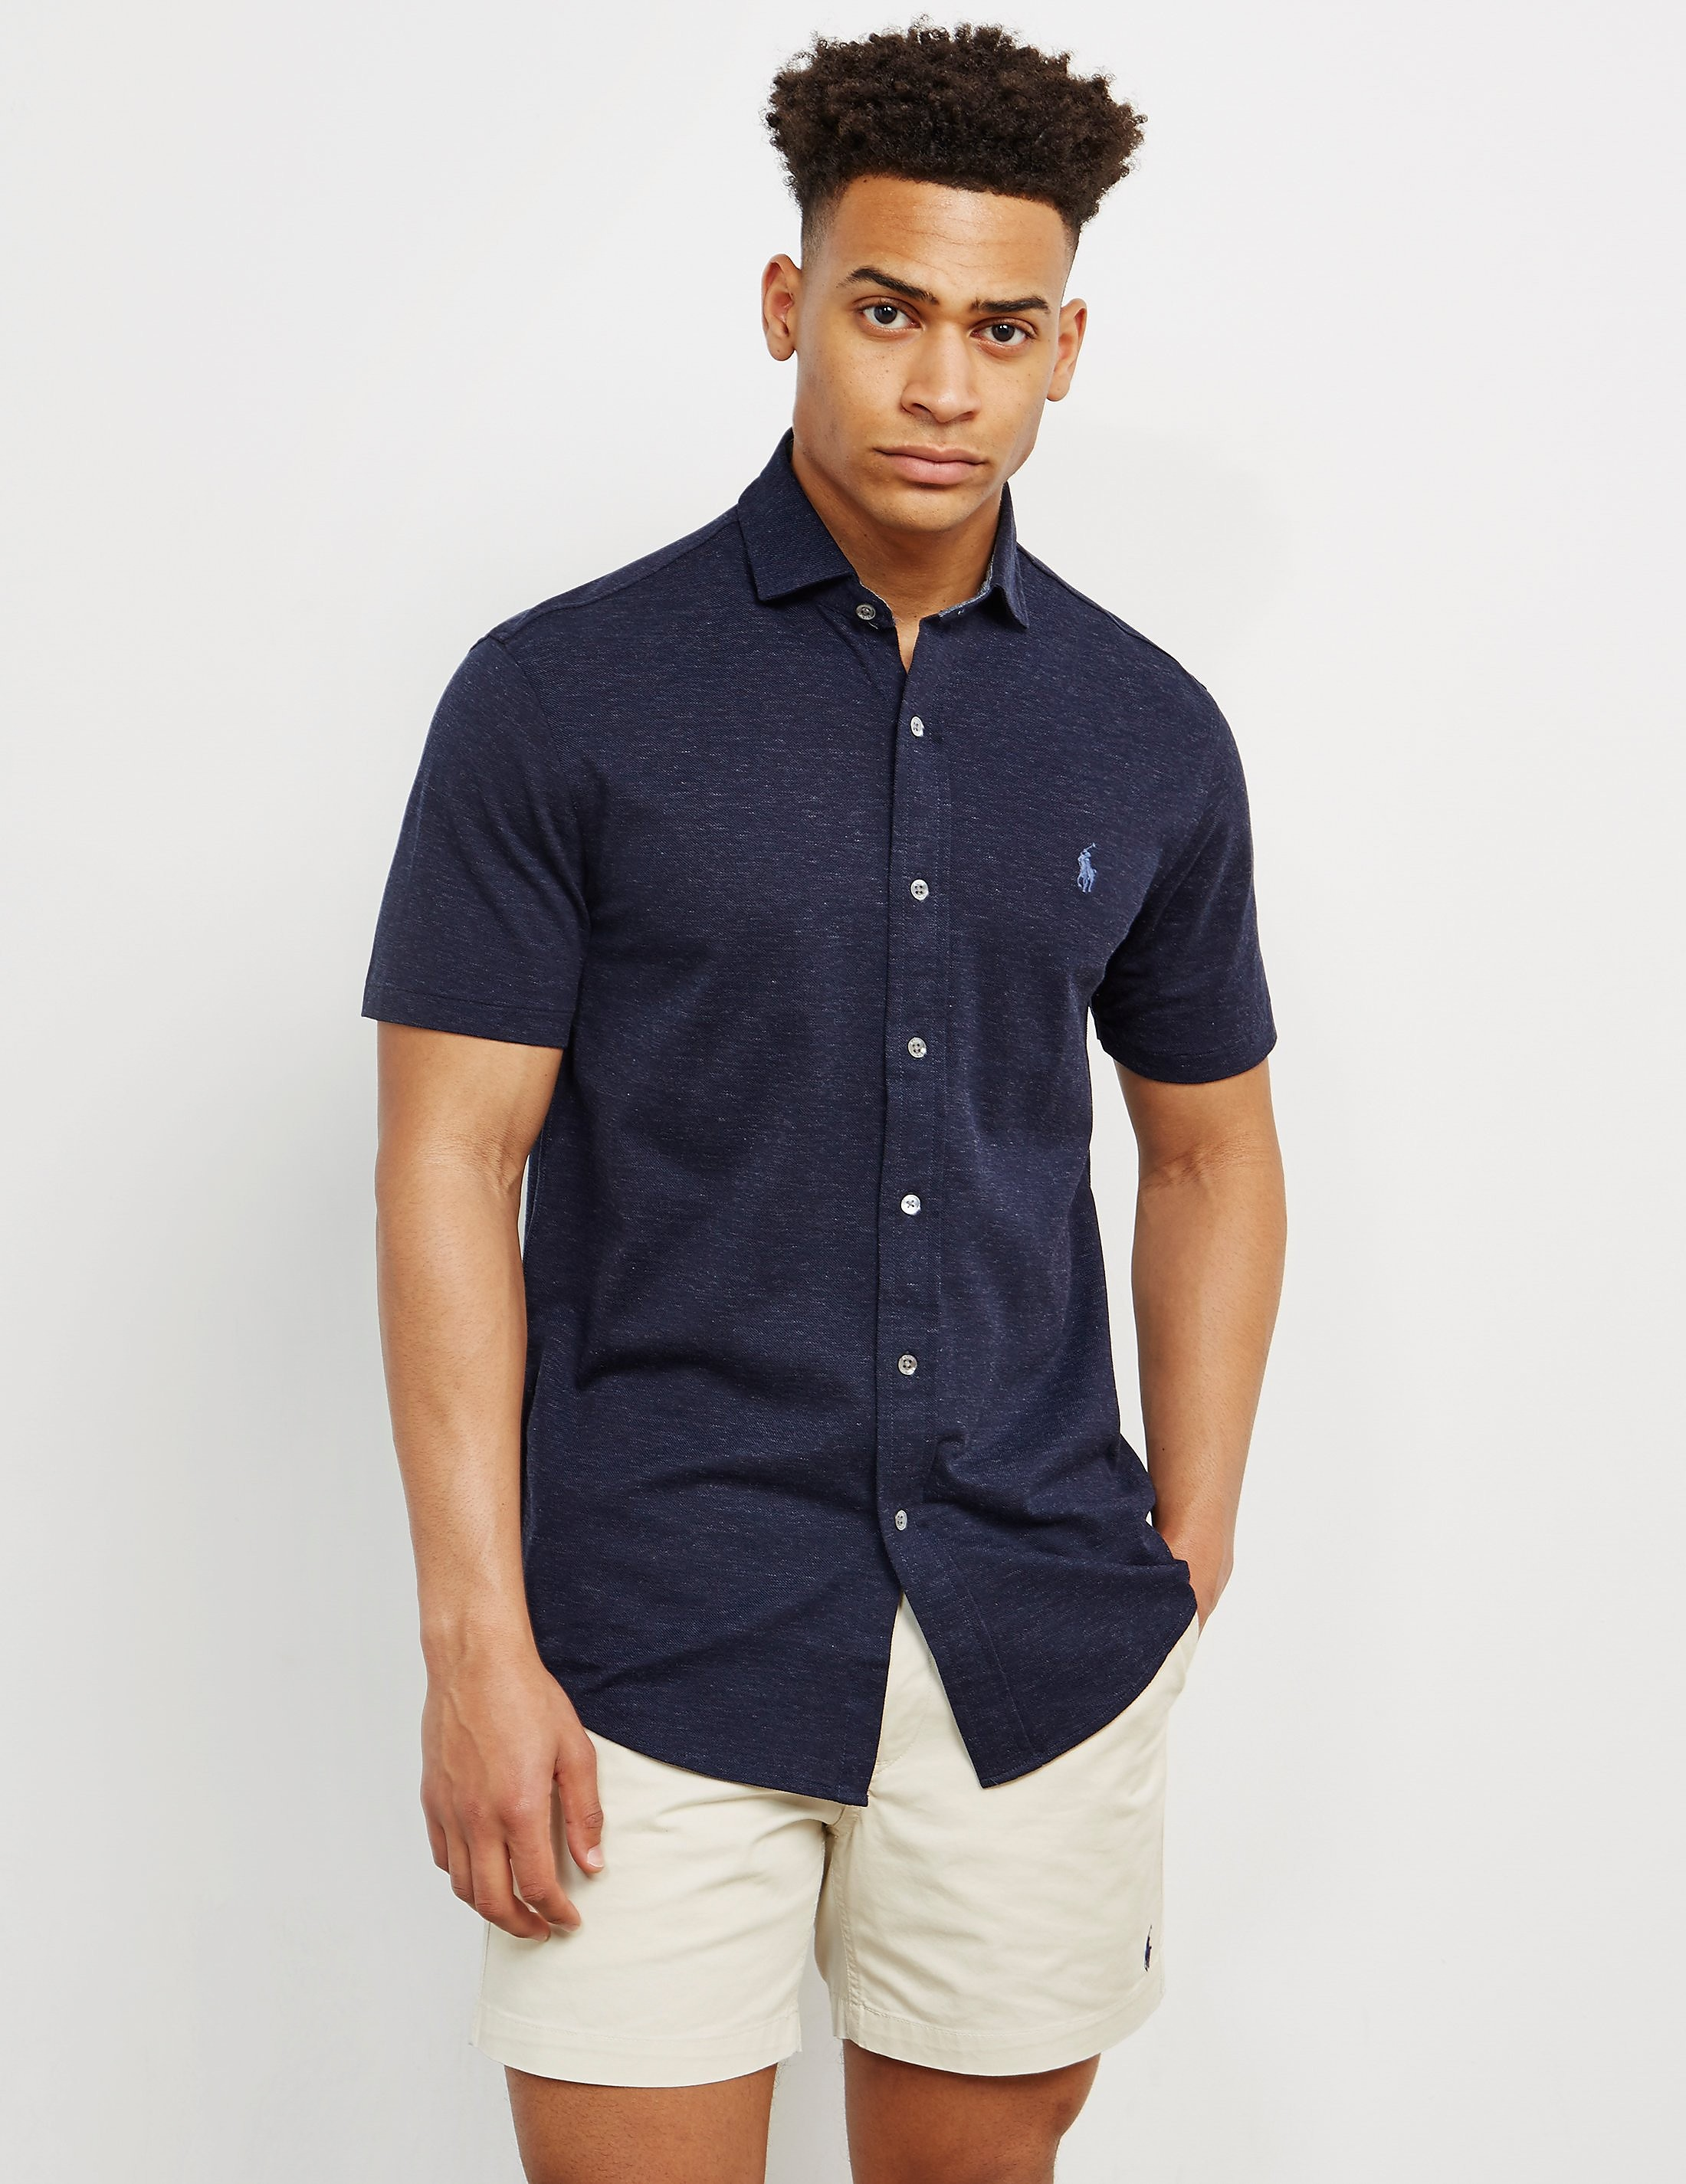 Polo Ralph Lauren Pique Short Sleeve Shirt